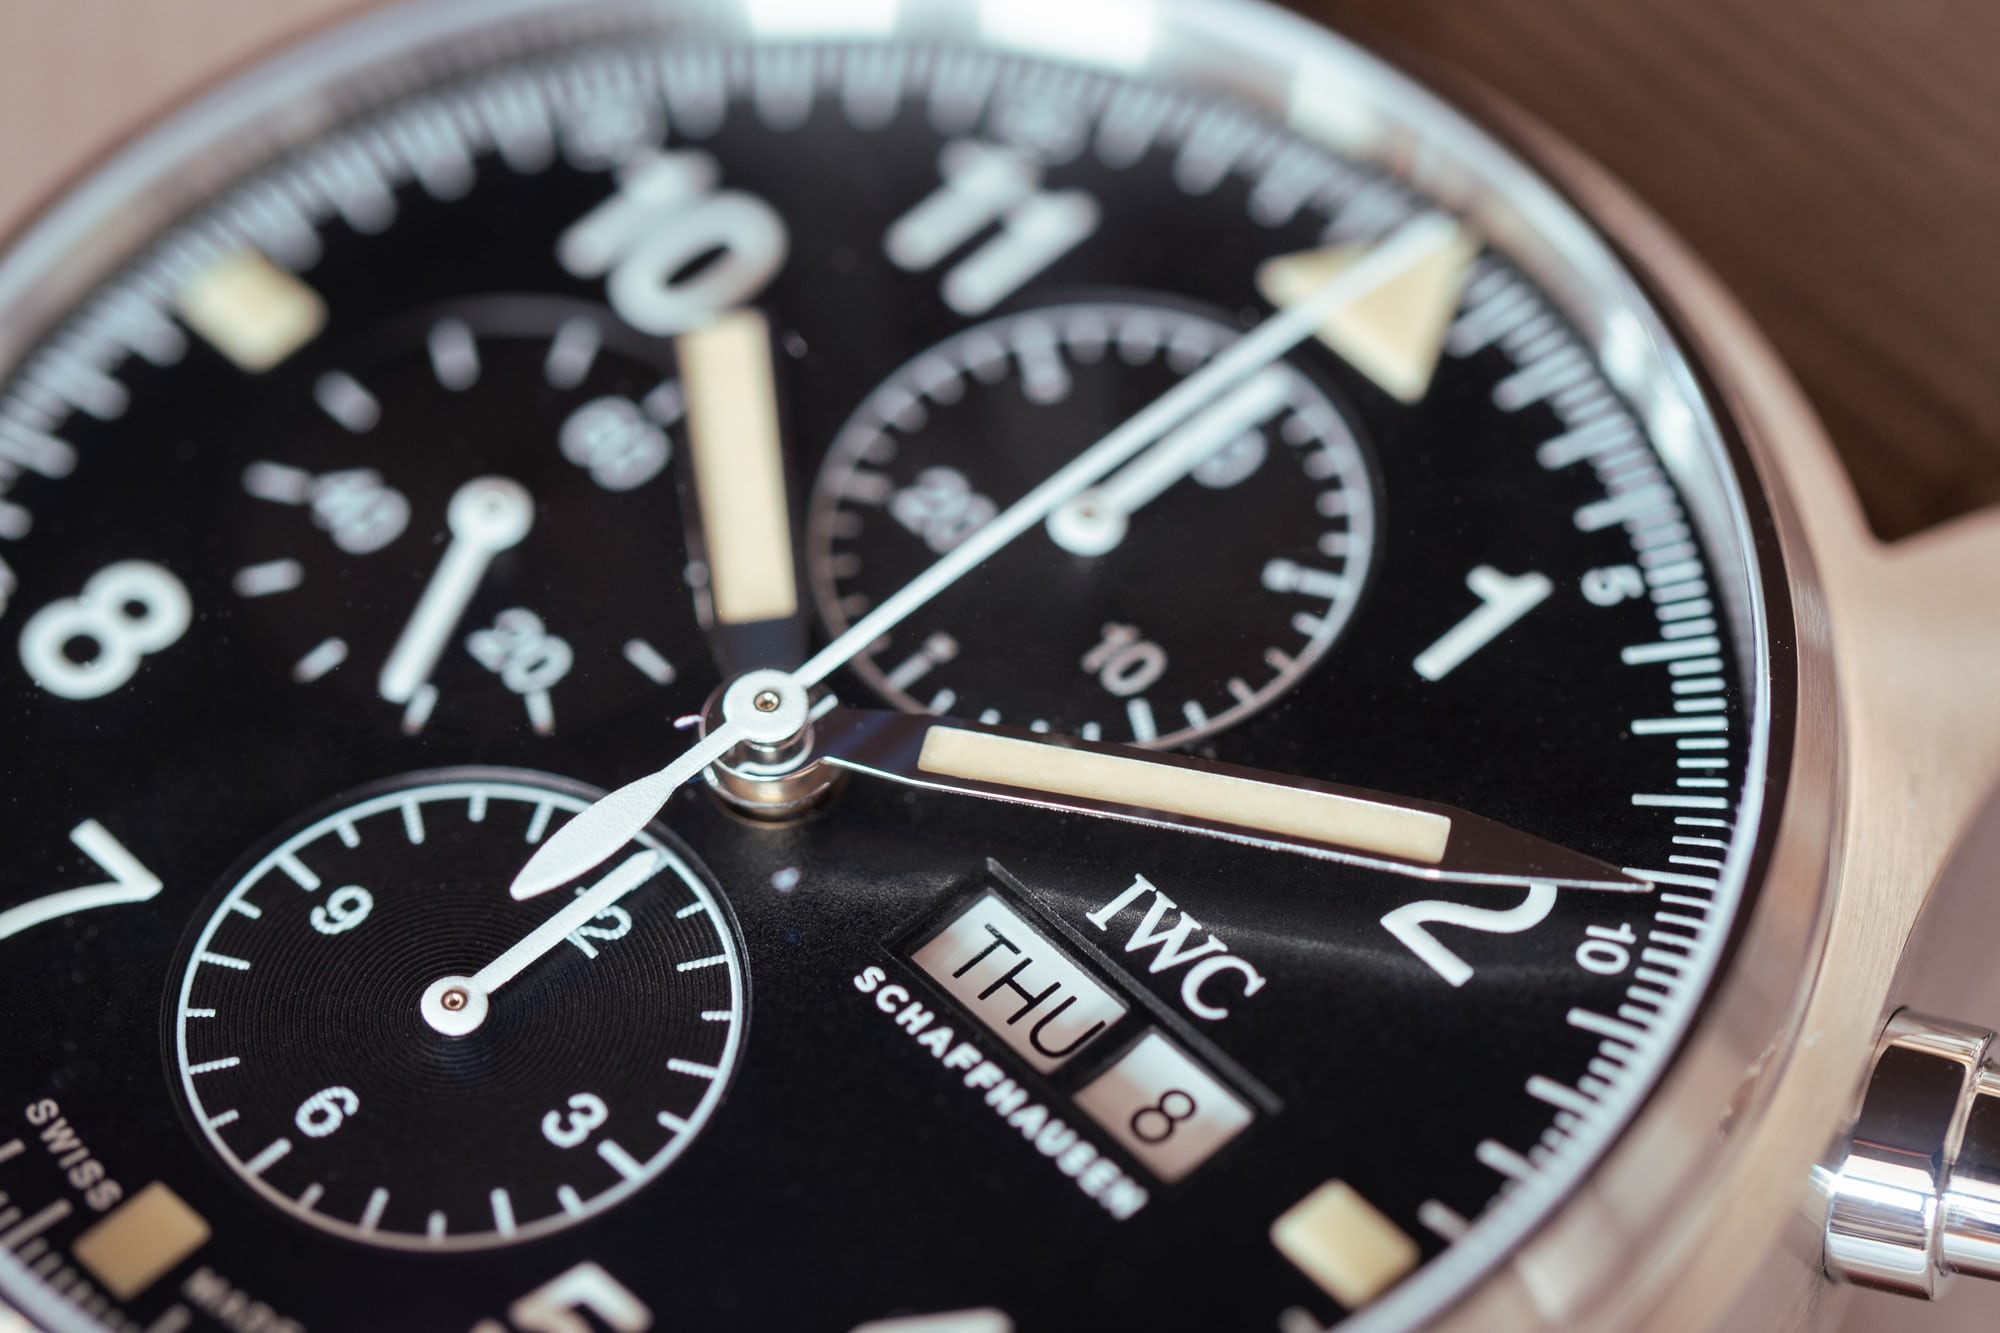 IWC Pilot's Watch Chronograph Reference IW377724 date window hands-on: the iwc pilot's watch chronograph ref. iw377724 Hands-On: The IWC Pilot's Watch Chronograph Ref. IW377724 P4250230